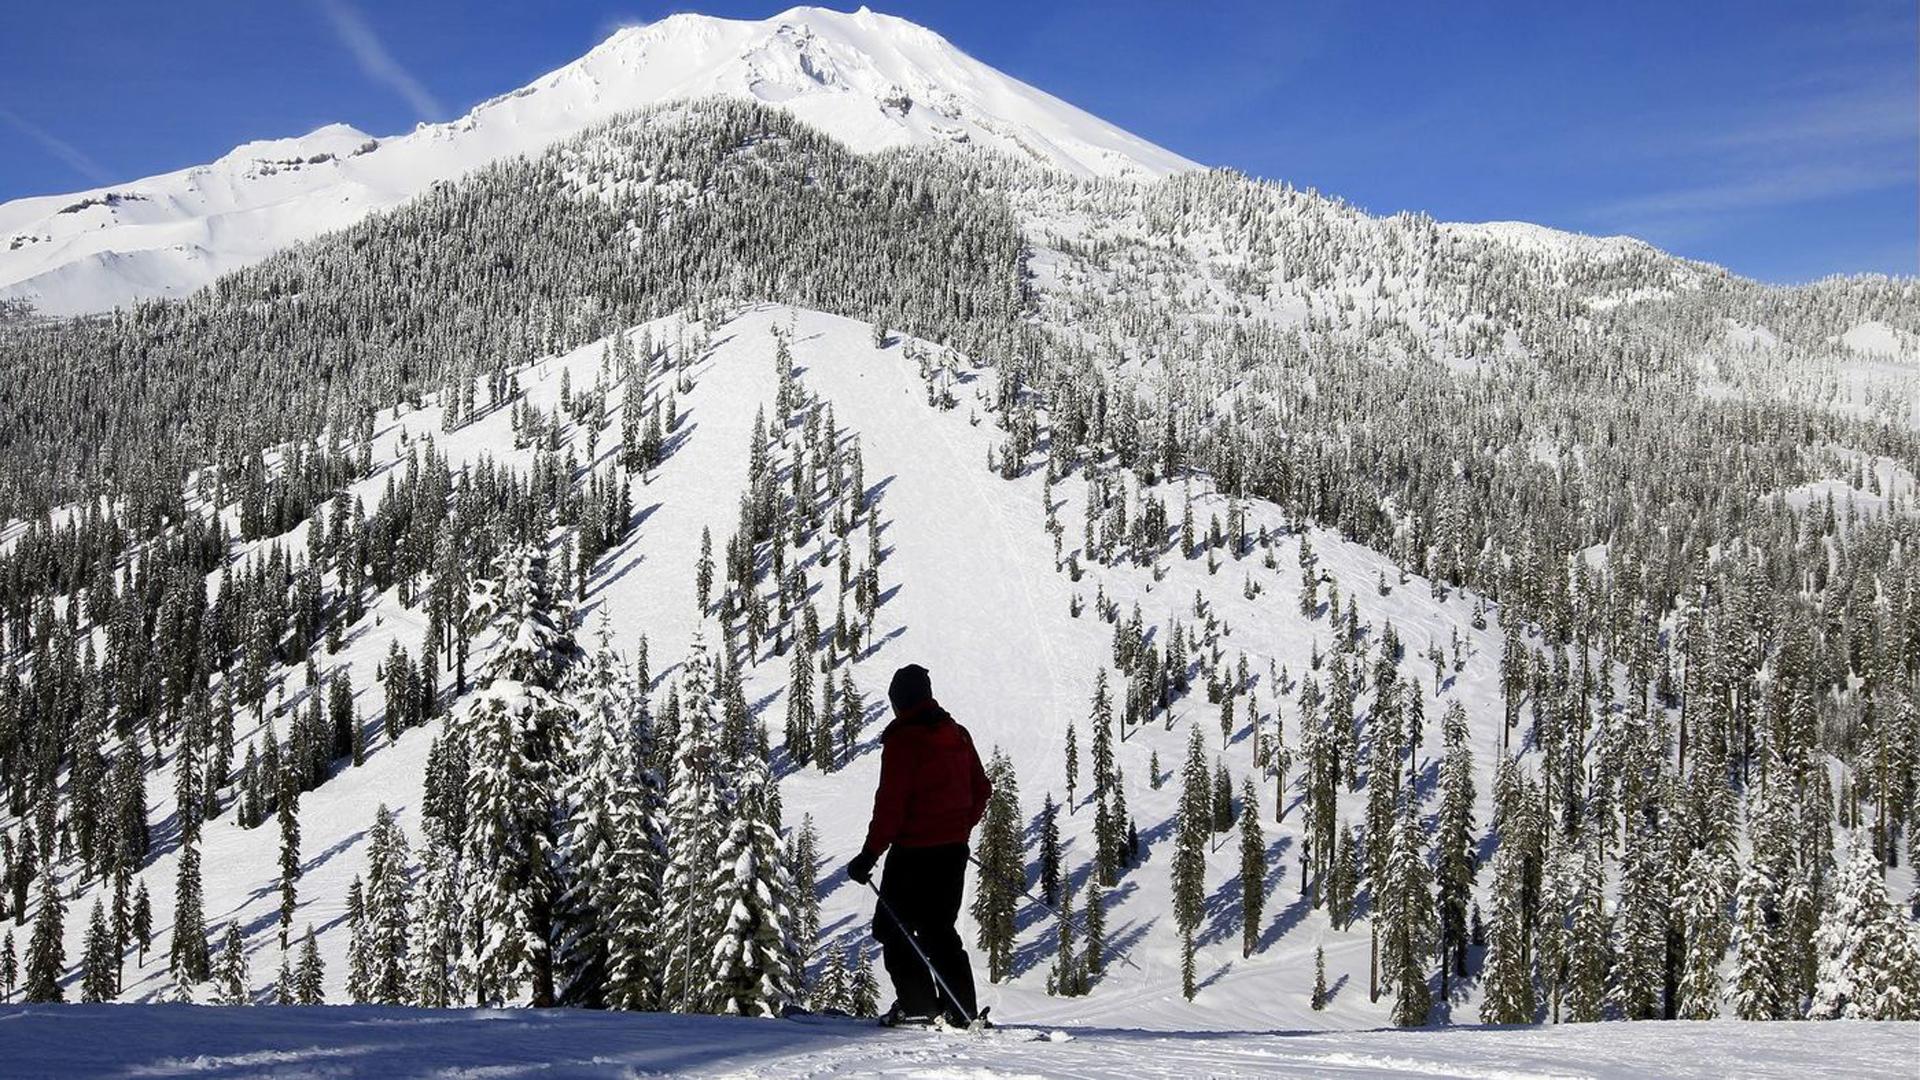 The snow is currently 9 feet deep on Mt. Shasta, but a new study suggests that the Sierra snowpack could be reduced by 79% by the end of the century. (Credit: Allen J. Schaben / Los Angeles Times)